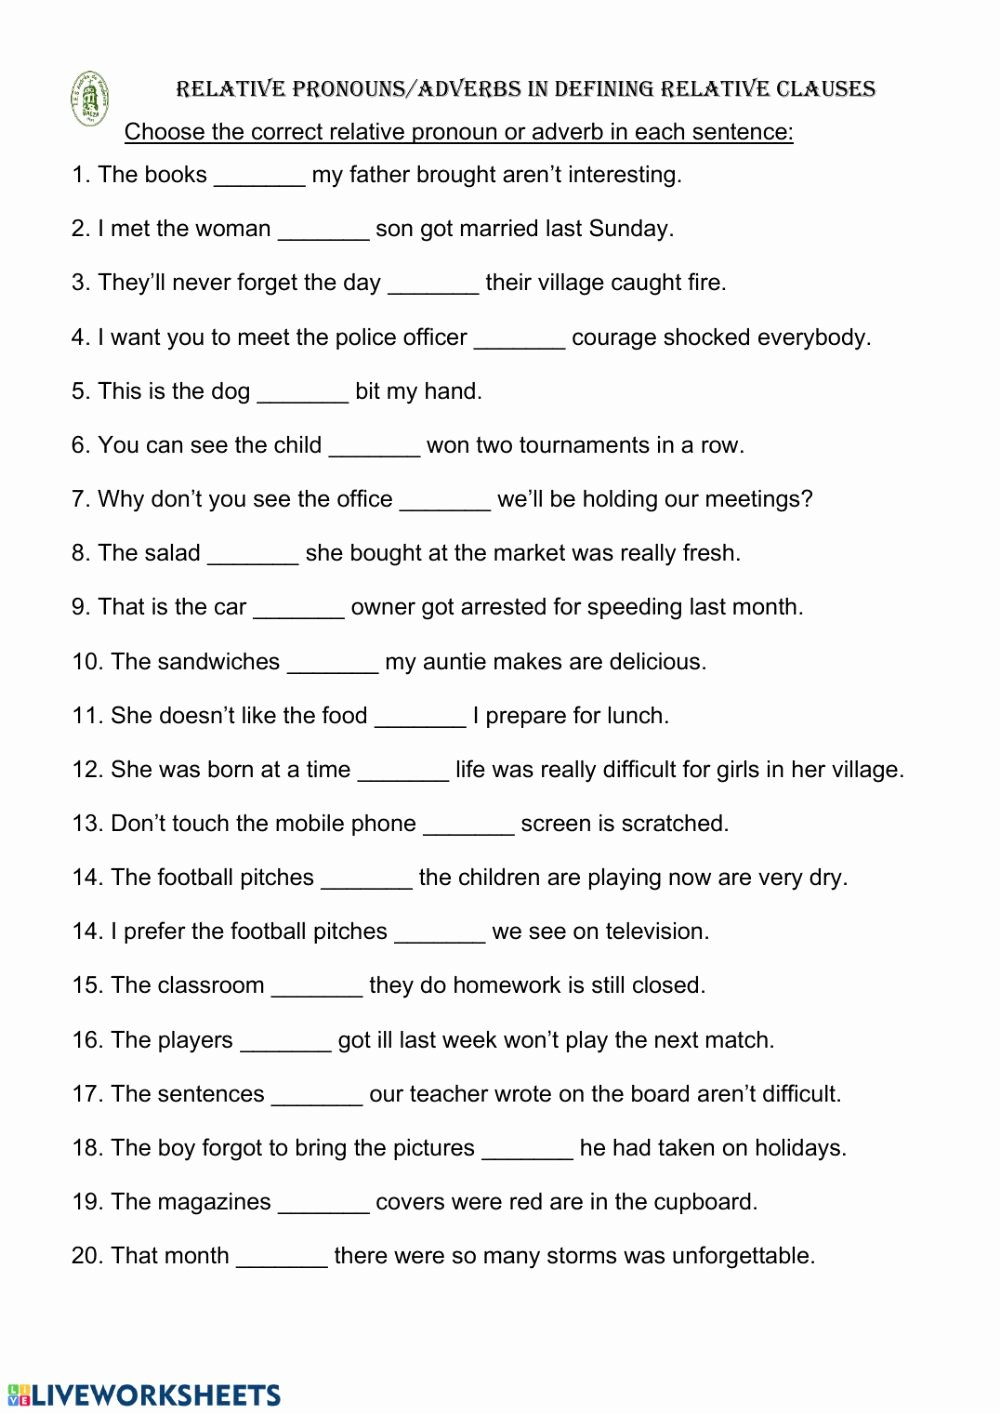 Relative Pronouns Worksheet Grade 4 Fresh Relative Pronouns Adverbs Interactive Worksheet